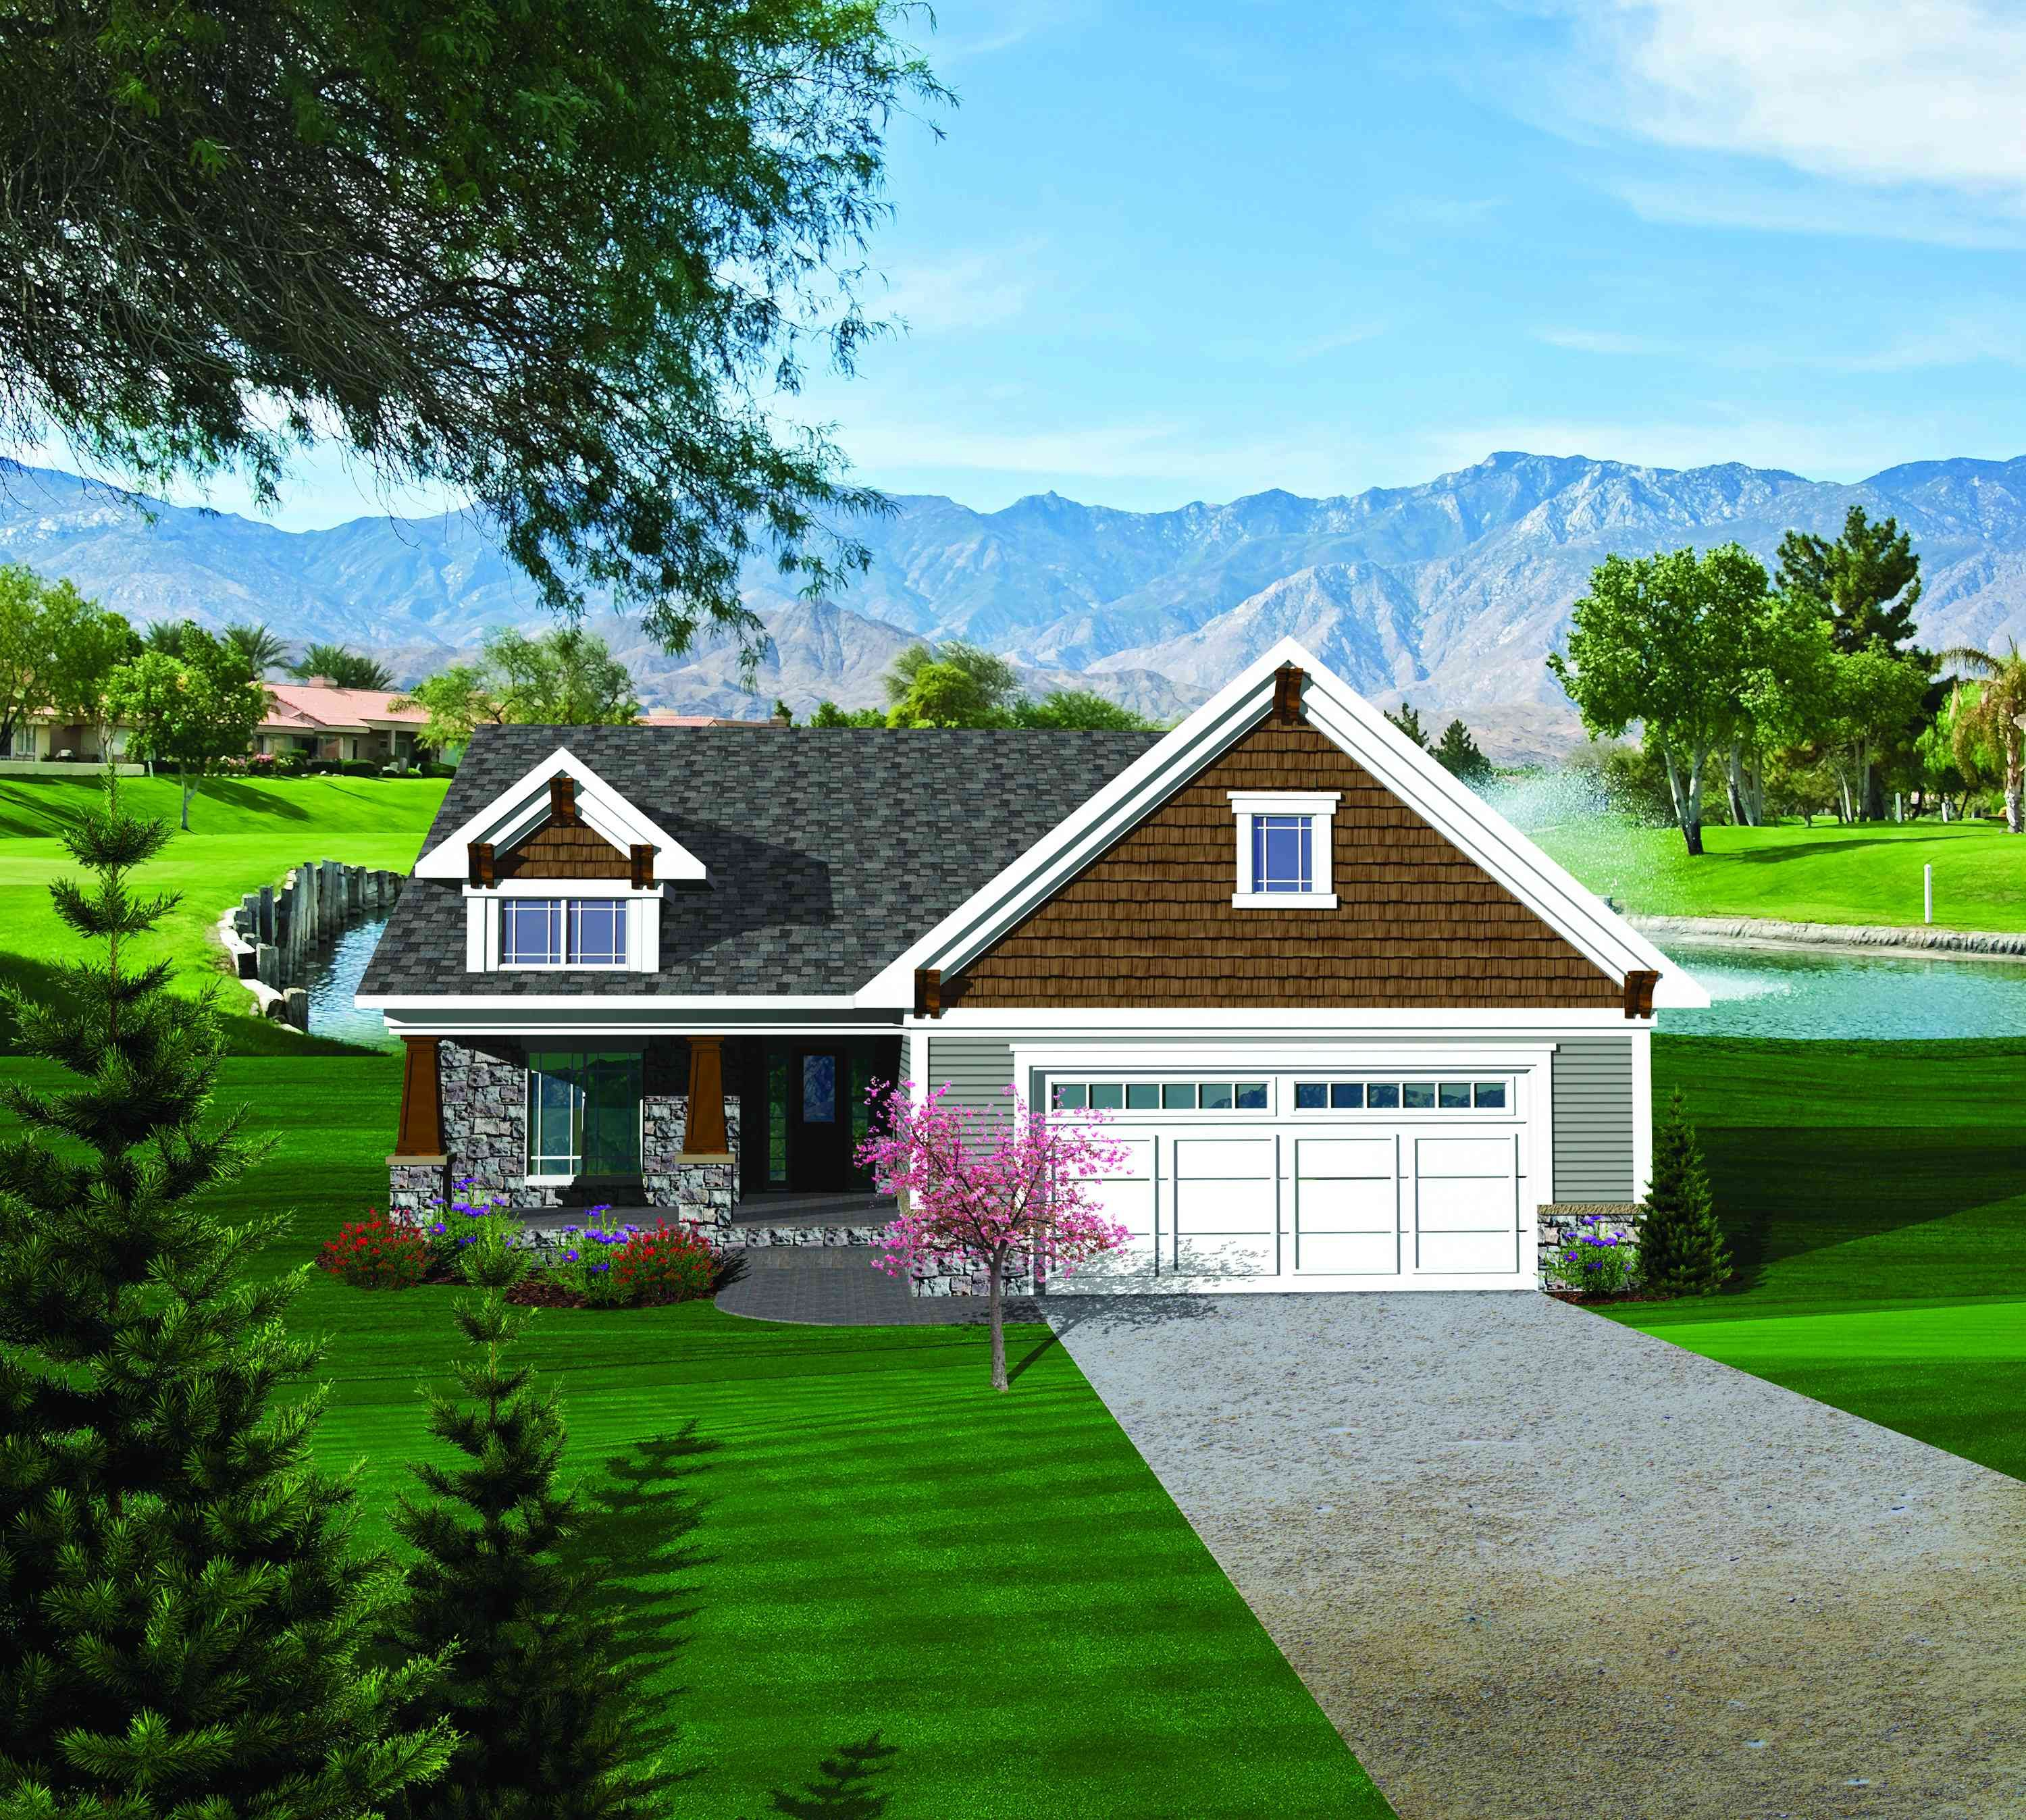 Easy To Build 2 Bed Home Plan   89819AH | Craftsman, Northwest, Ranch,  Narrow Lot, 1st Floor Master Suite, Butler Walk In Pantry, CAD Available,  PDF, ...